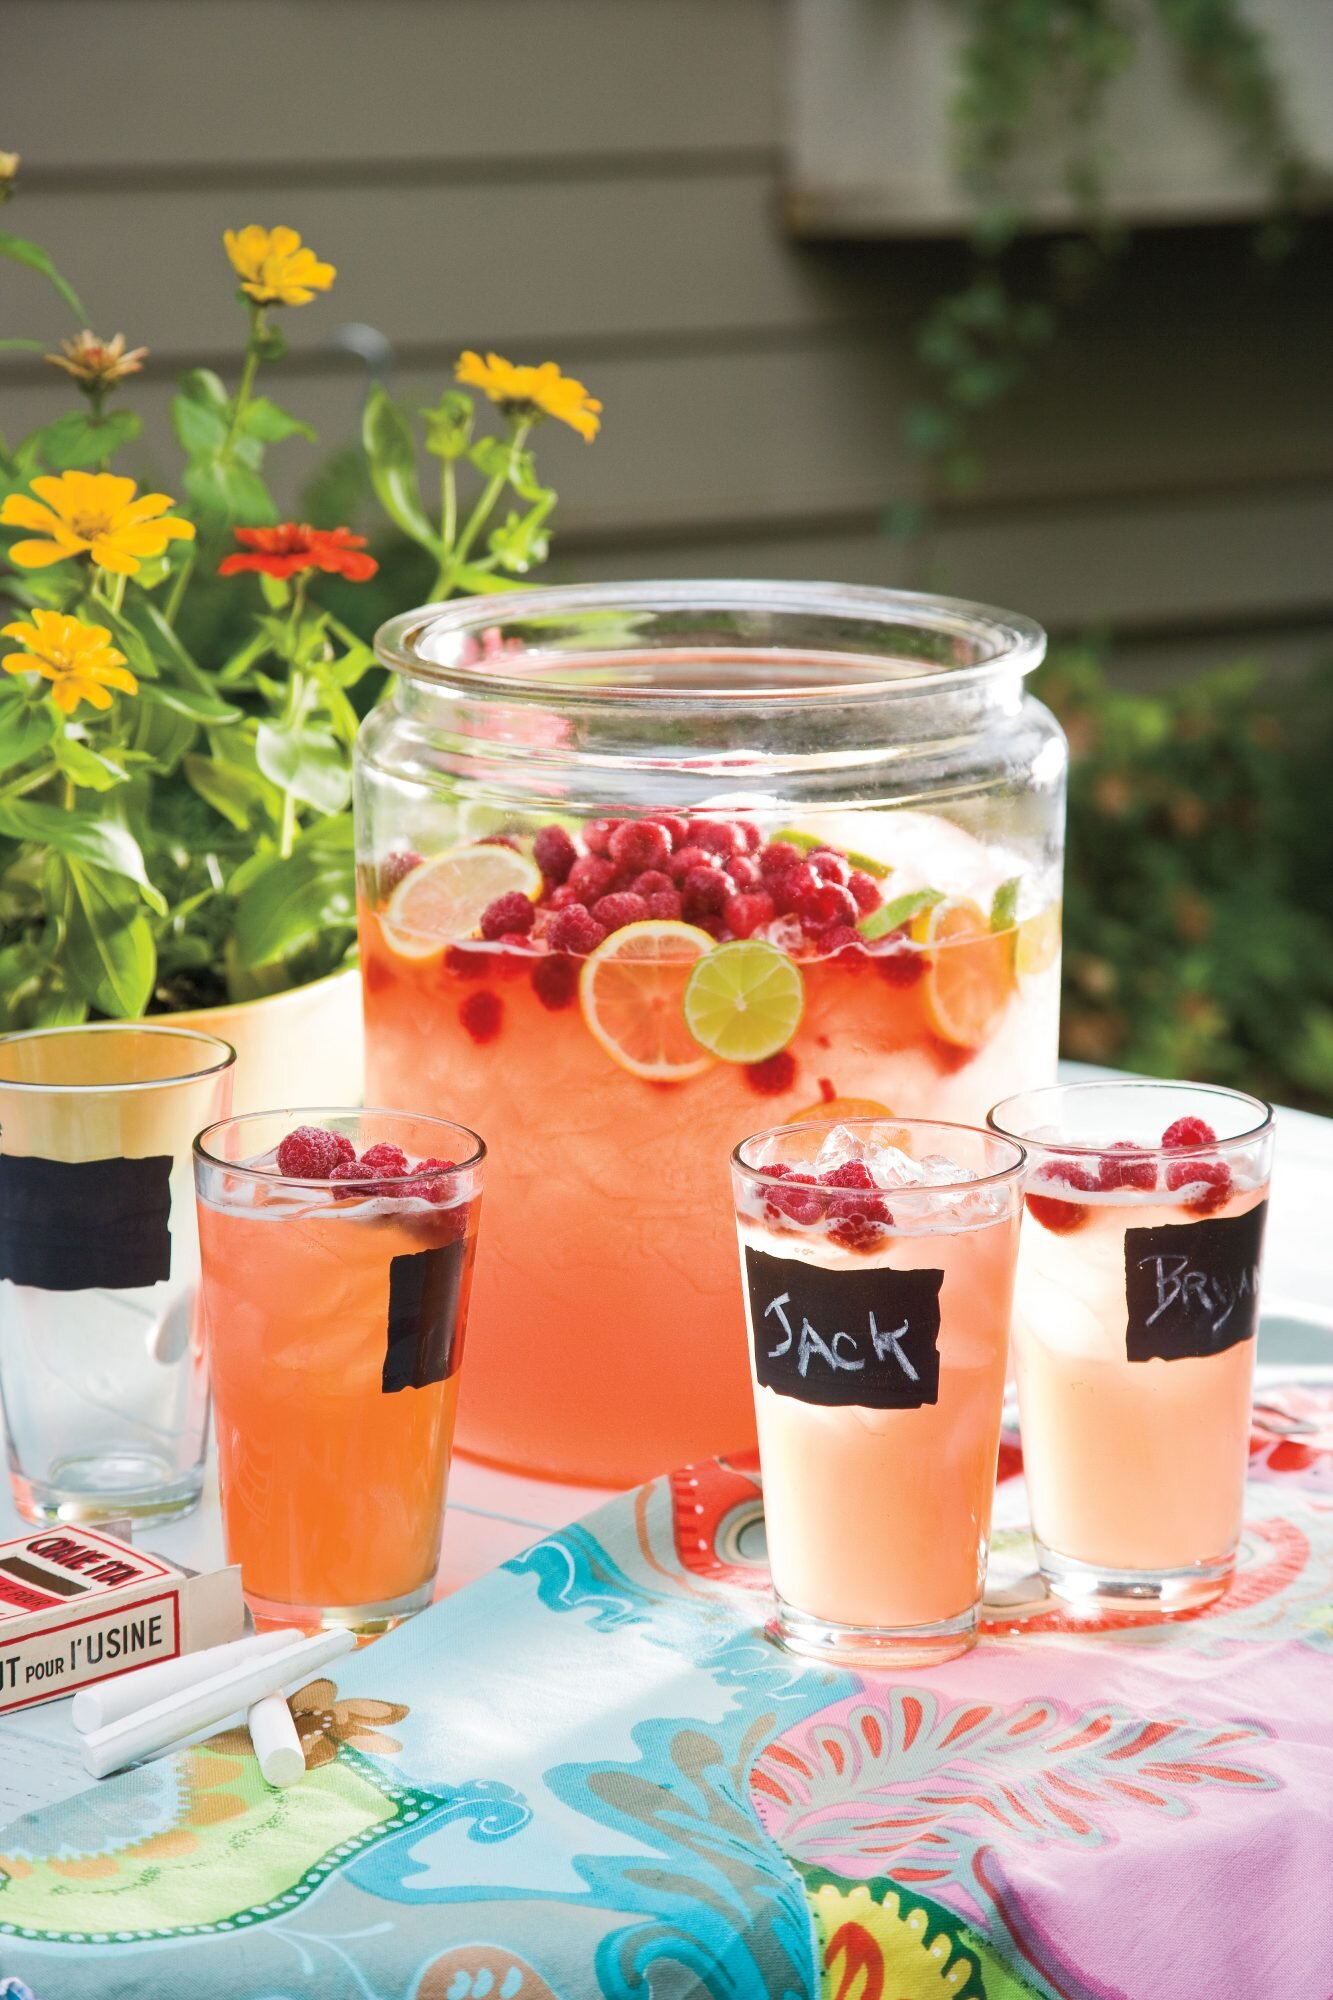 Wedding Bridal Shower Ideas Food Recipes Decorations And More Entertaining Tips Southern Living